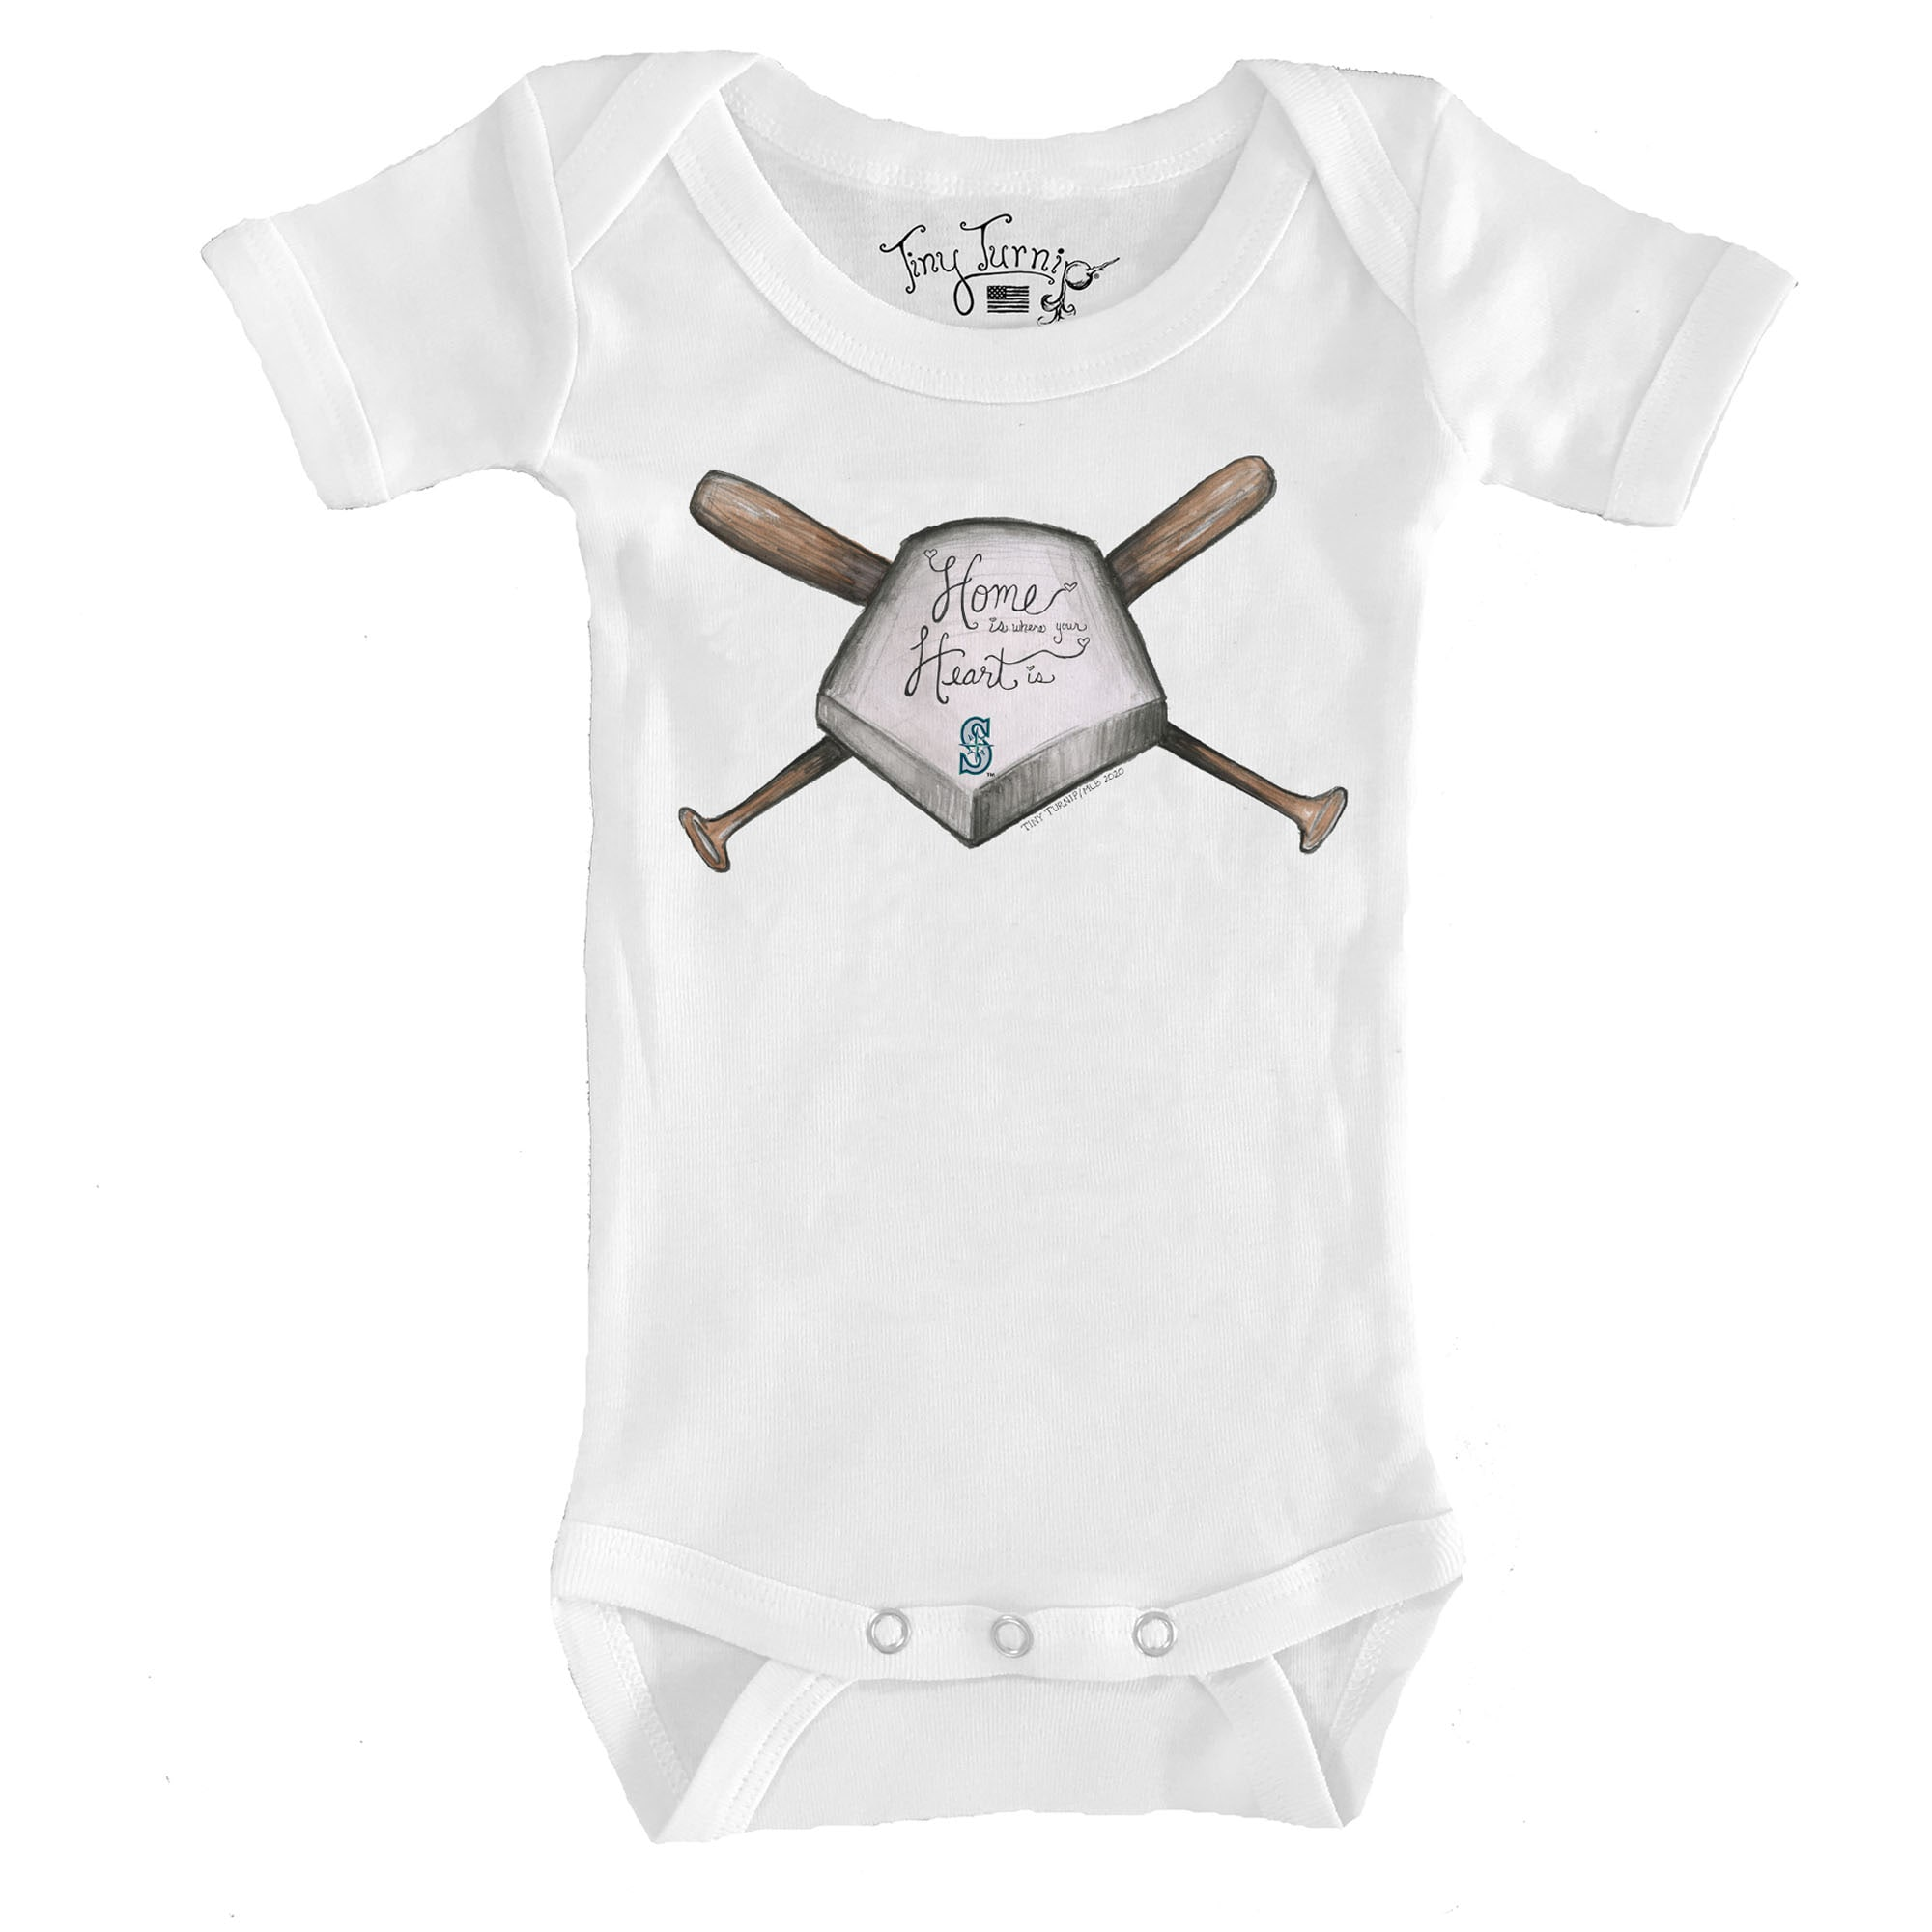 Seattle Mariners Tiny Turnip Infant Home Is Where Your Heart Is Bodysuit - White